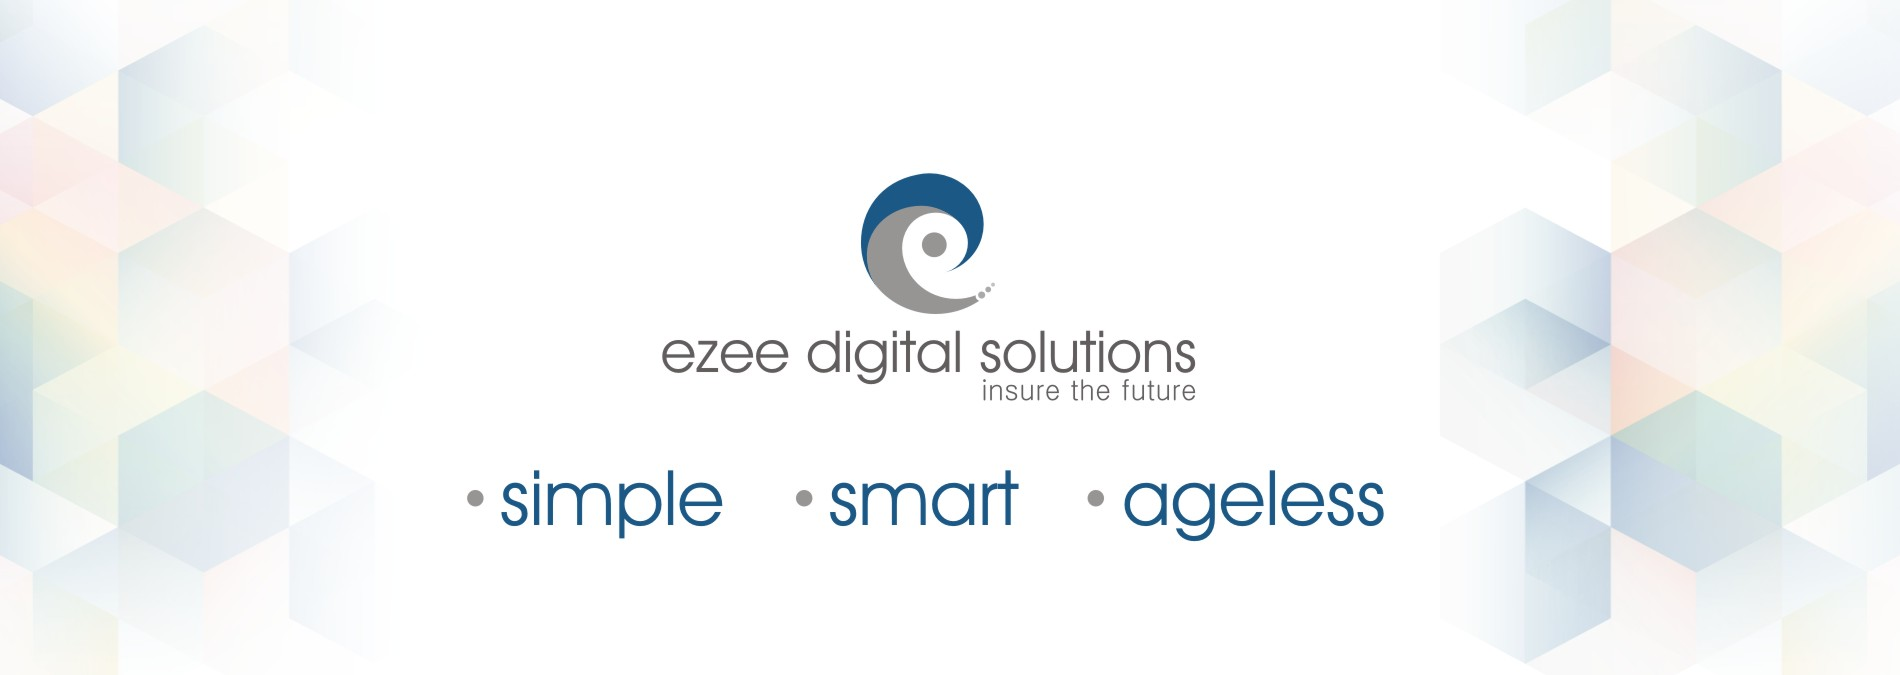 ezee digital solution